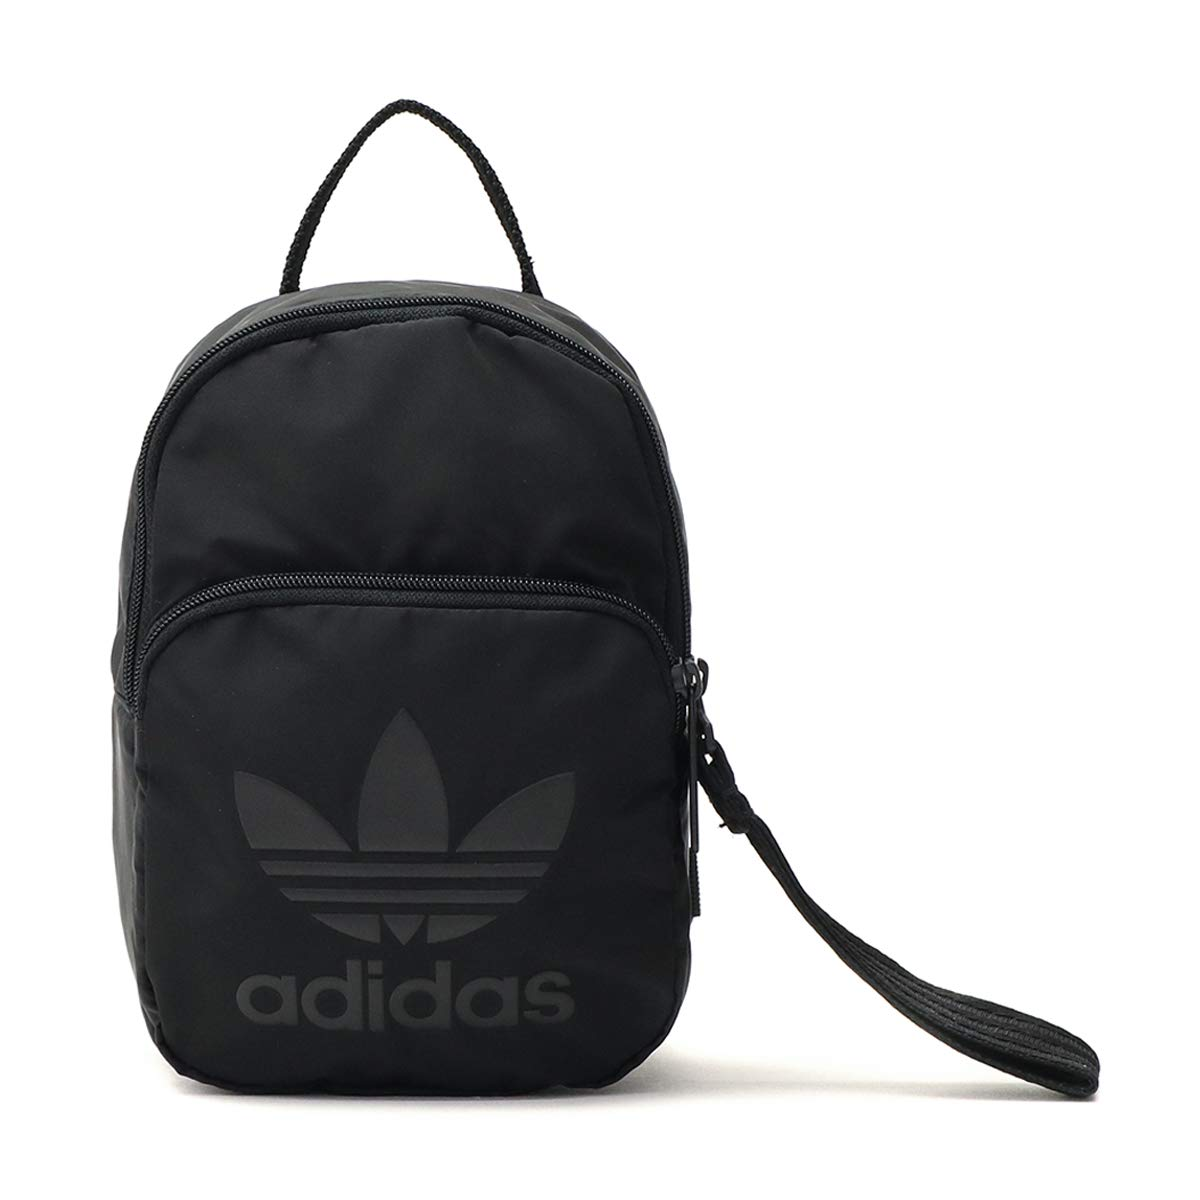 cc3c8f19d183d Amazon.com | Adidas Originals Backpack Xs Backpack One Size Black ...